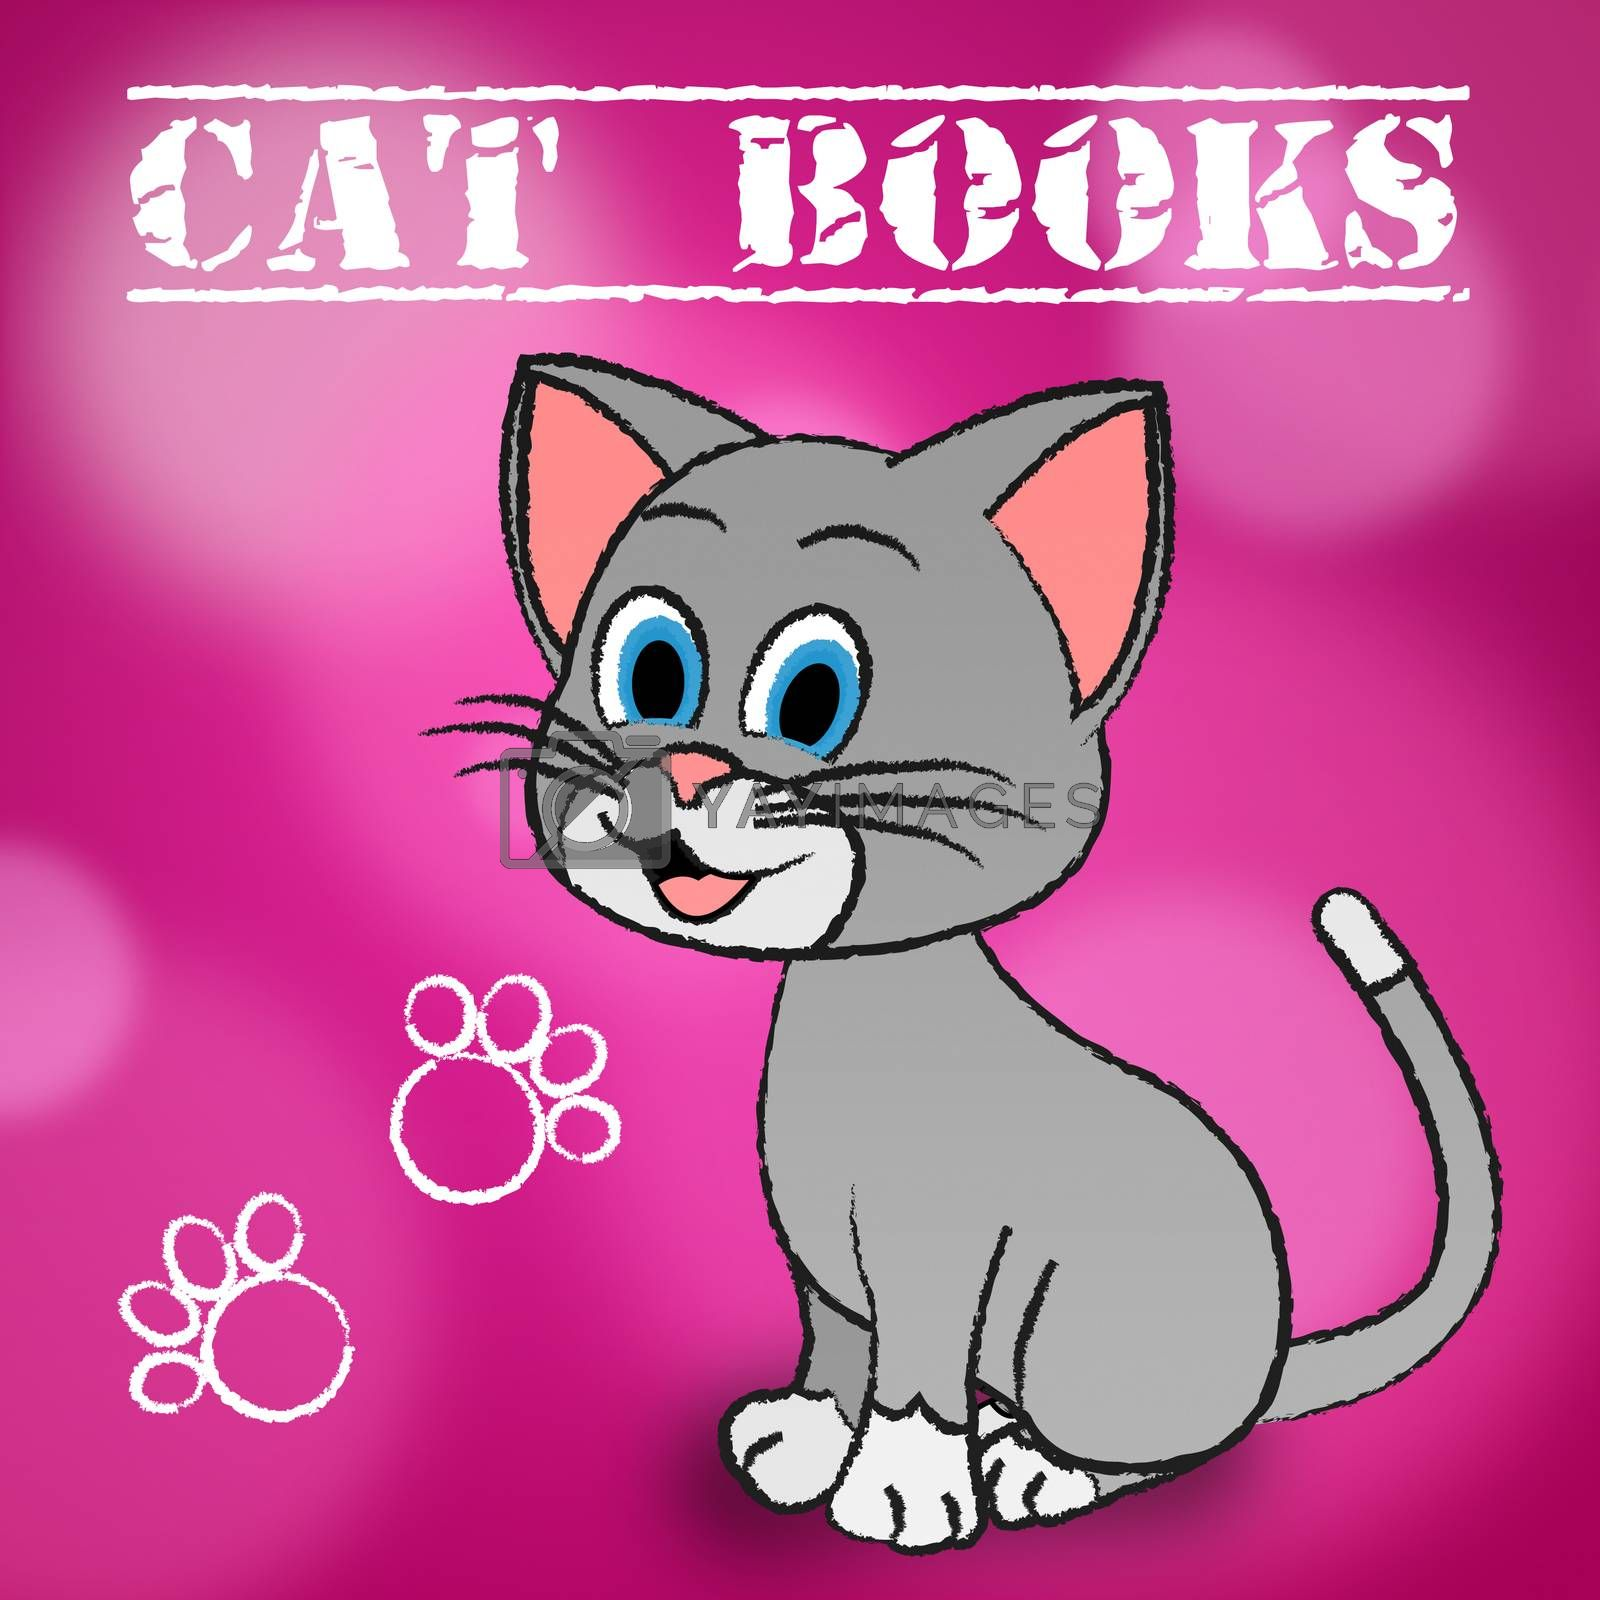 Cat Books Showing Education Learning And Kitten